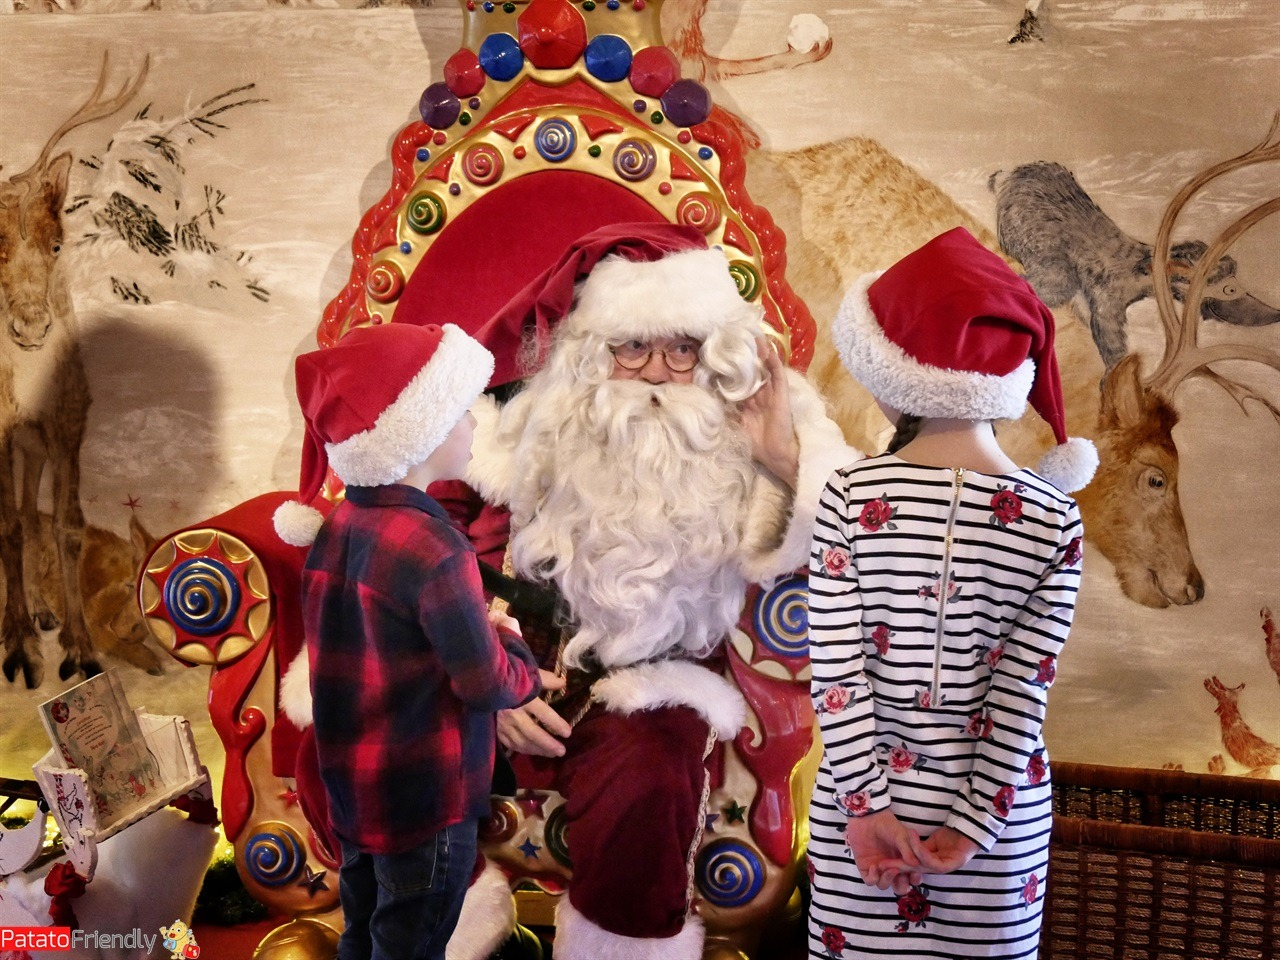 [cml_media_alt id='12977']Natale a Montreux coi bambini - Babbo Natale[/cml_media_alt]